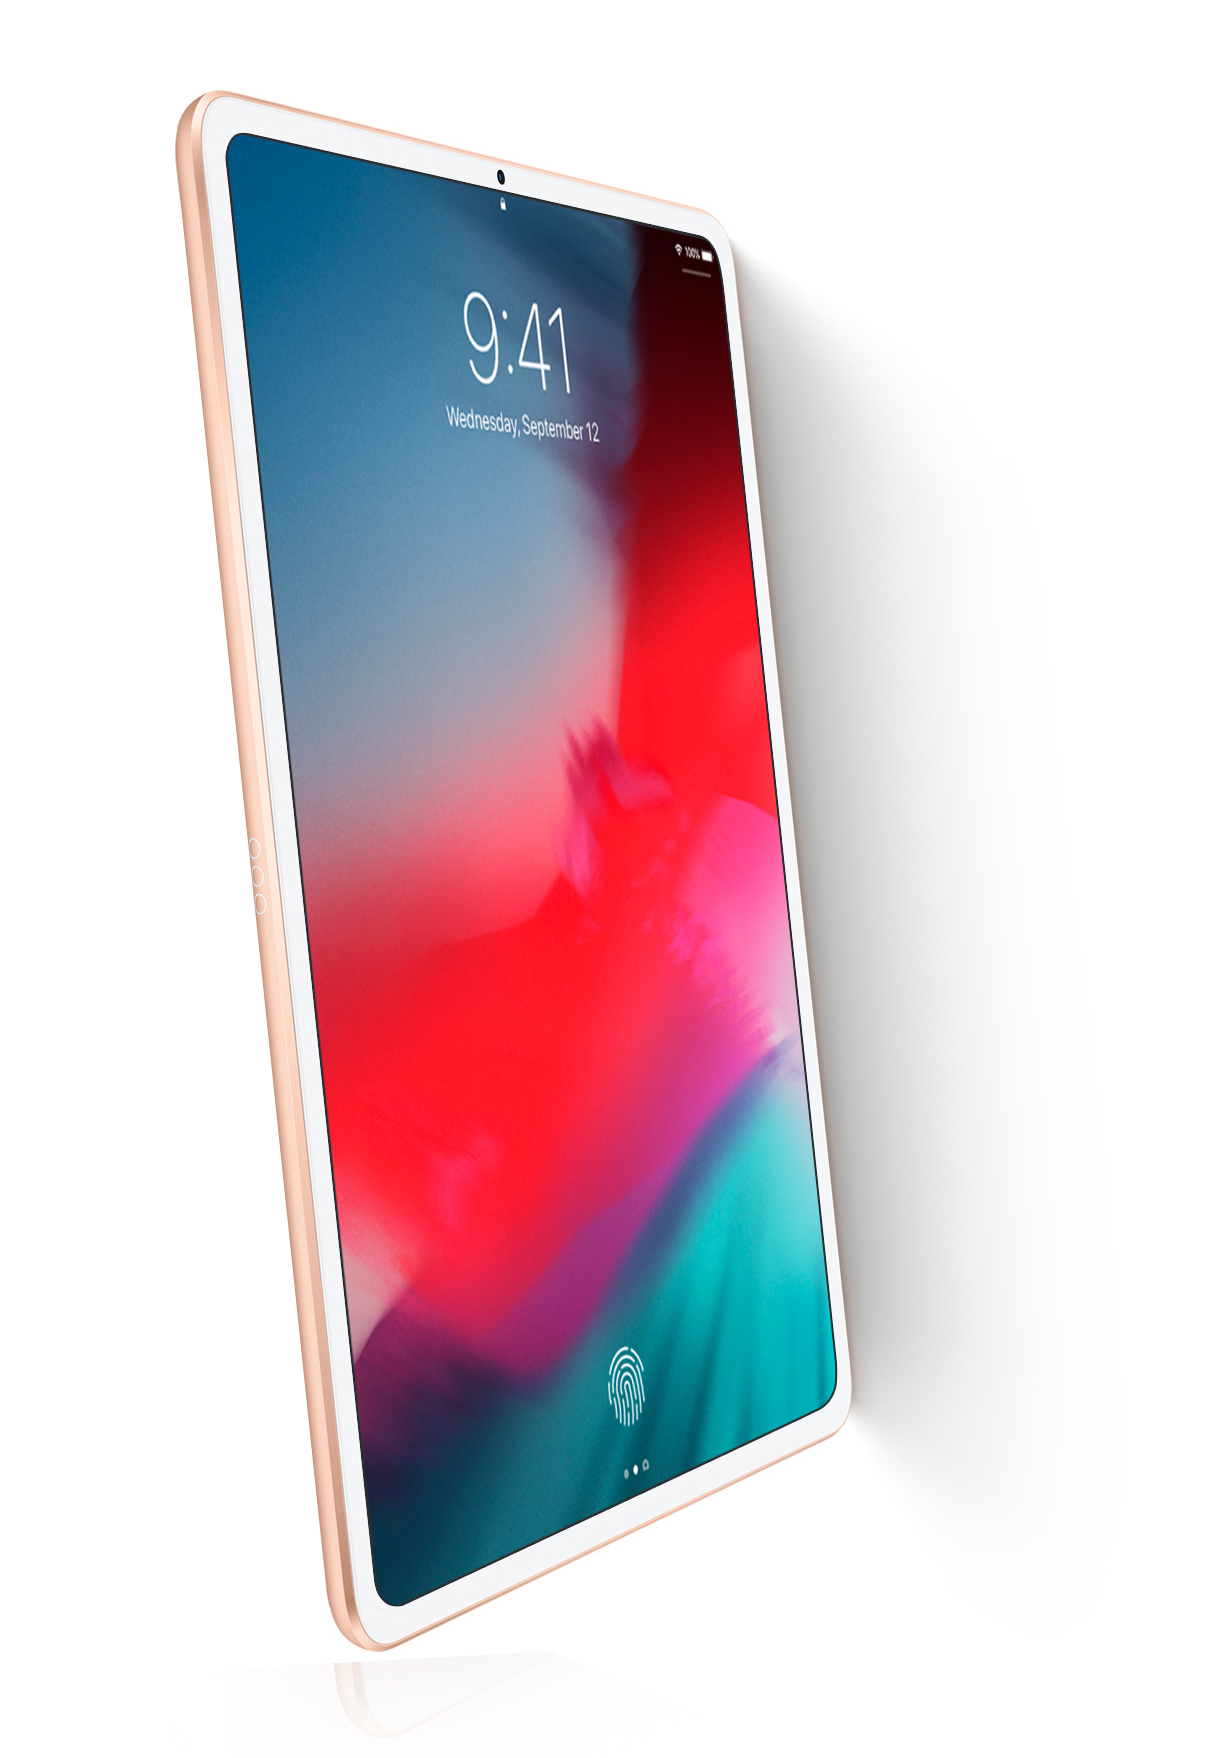 iPad Air 4 Said to Launch in March 2021 With A14 Processor ...